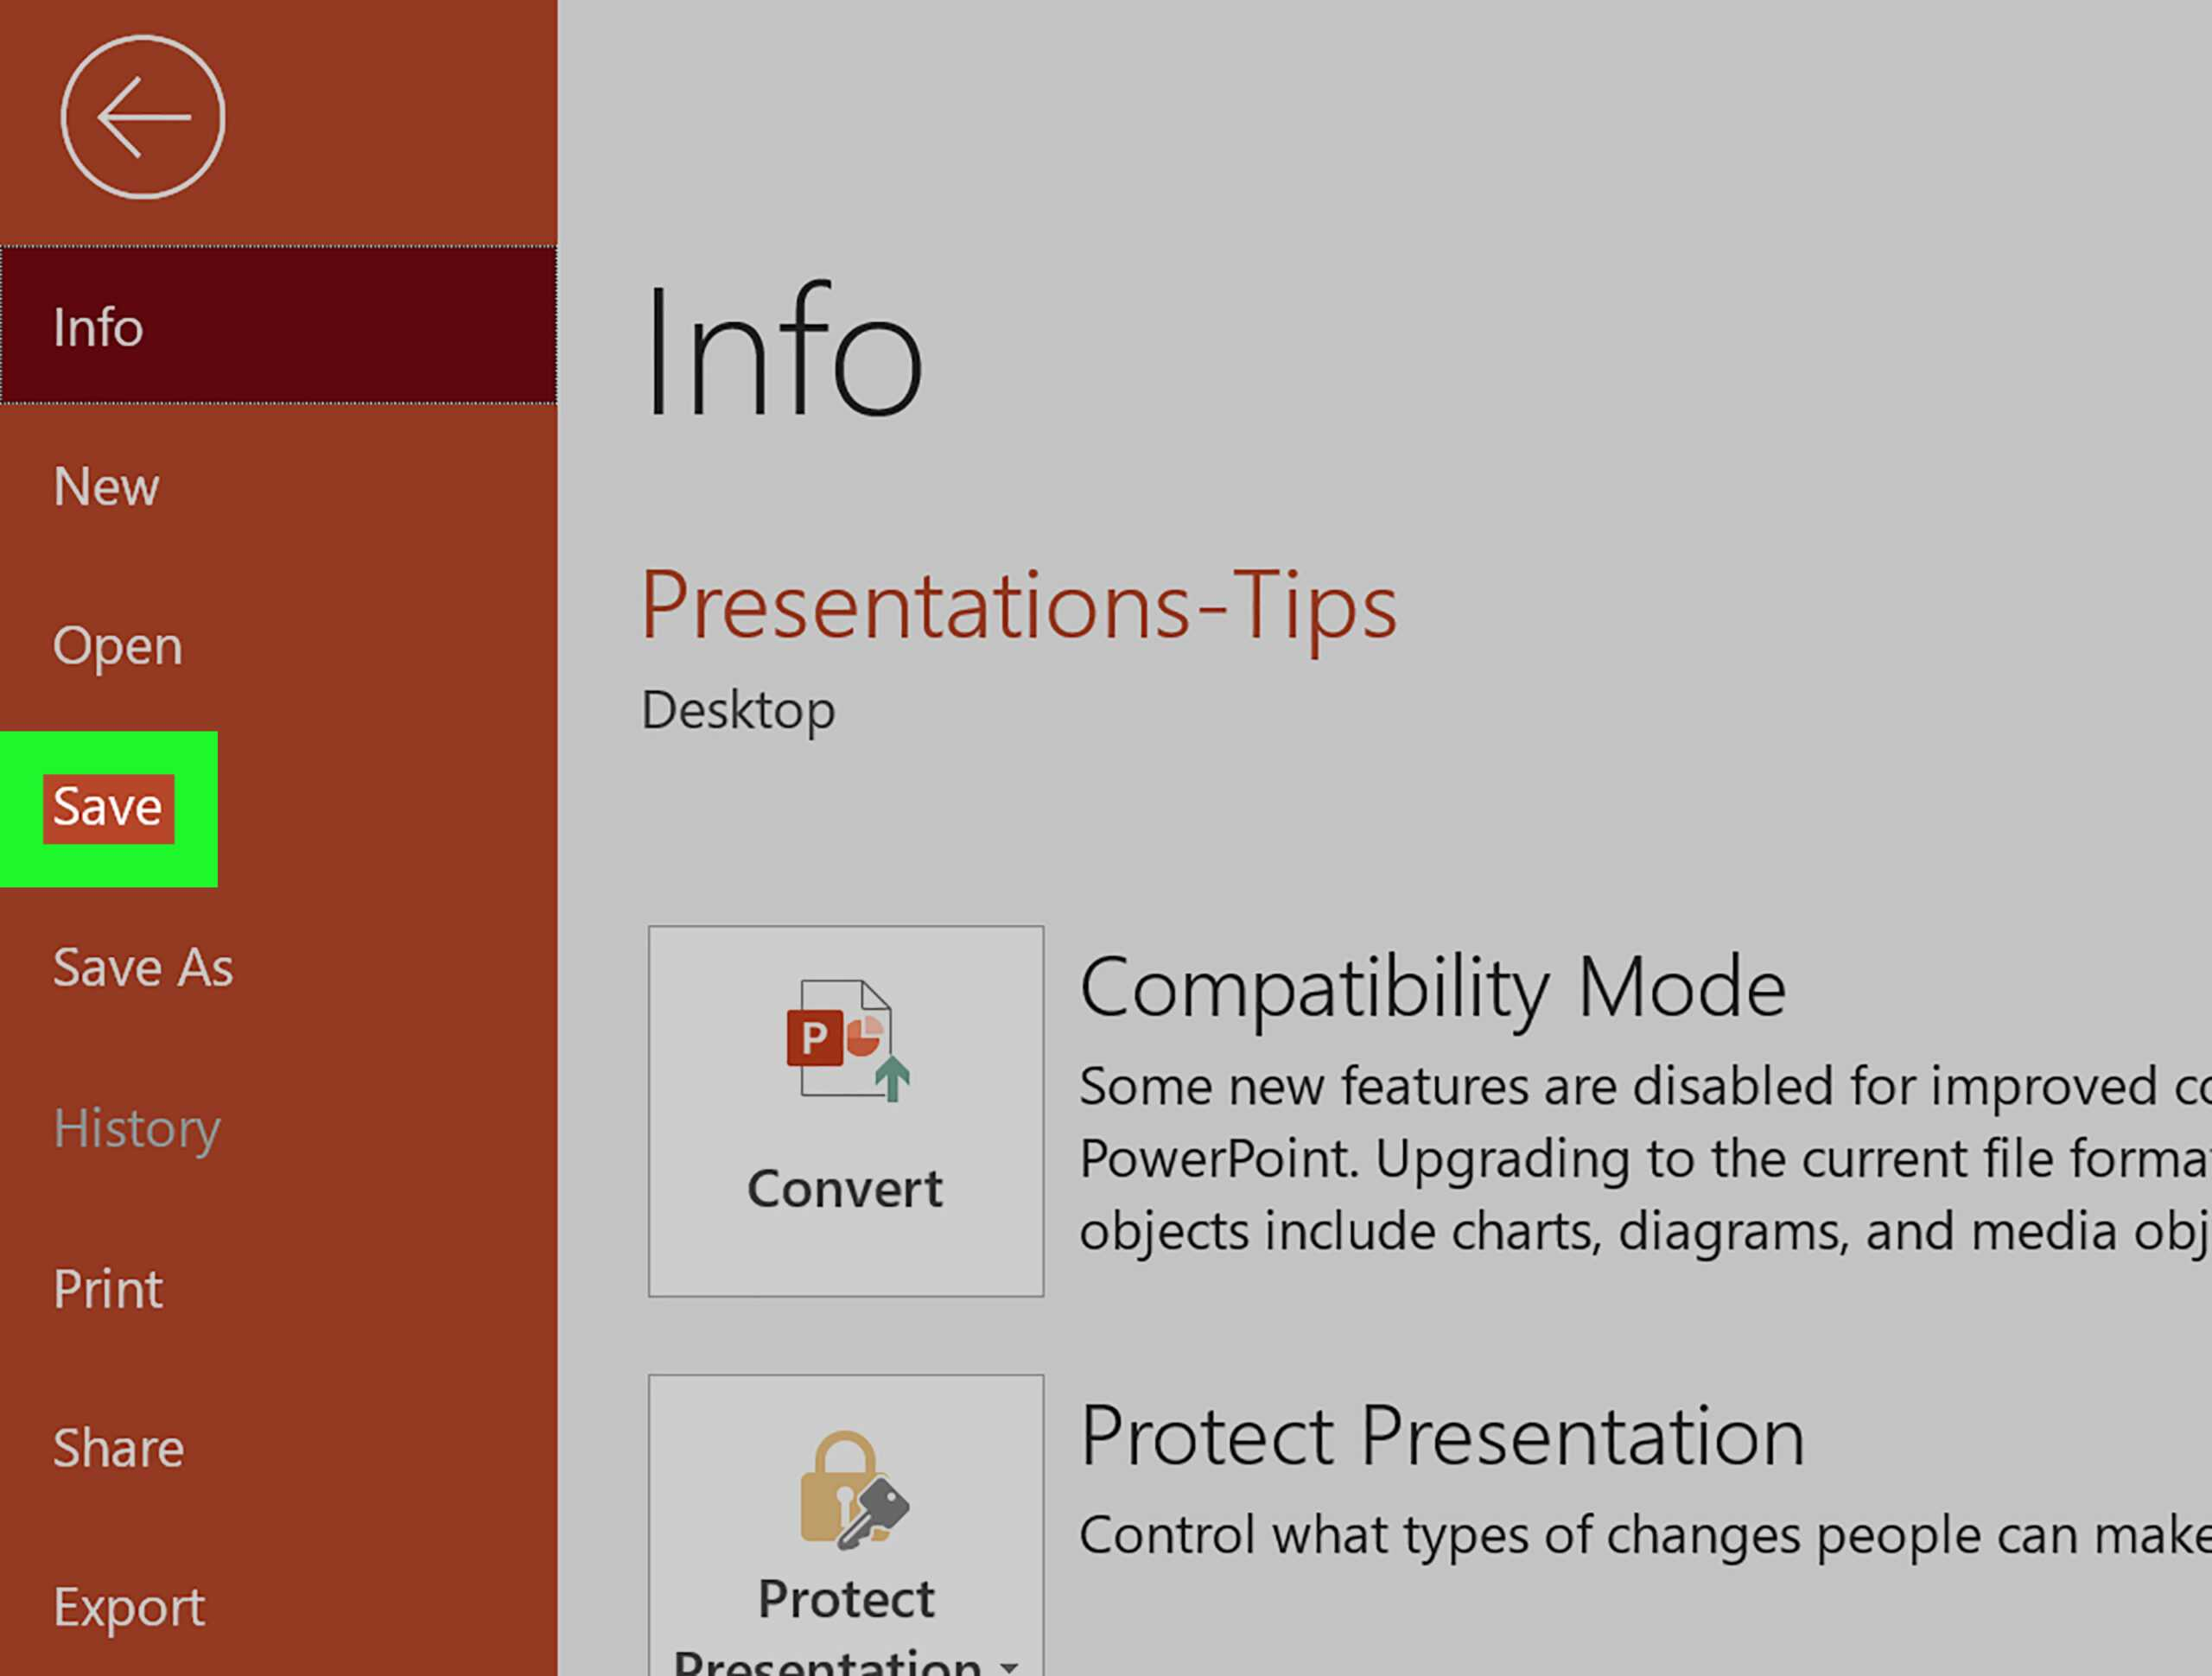 How To Edit A Powerpoint Template: 6 Steps (With Pictures) regarding How To Edit A Powerpoint Template